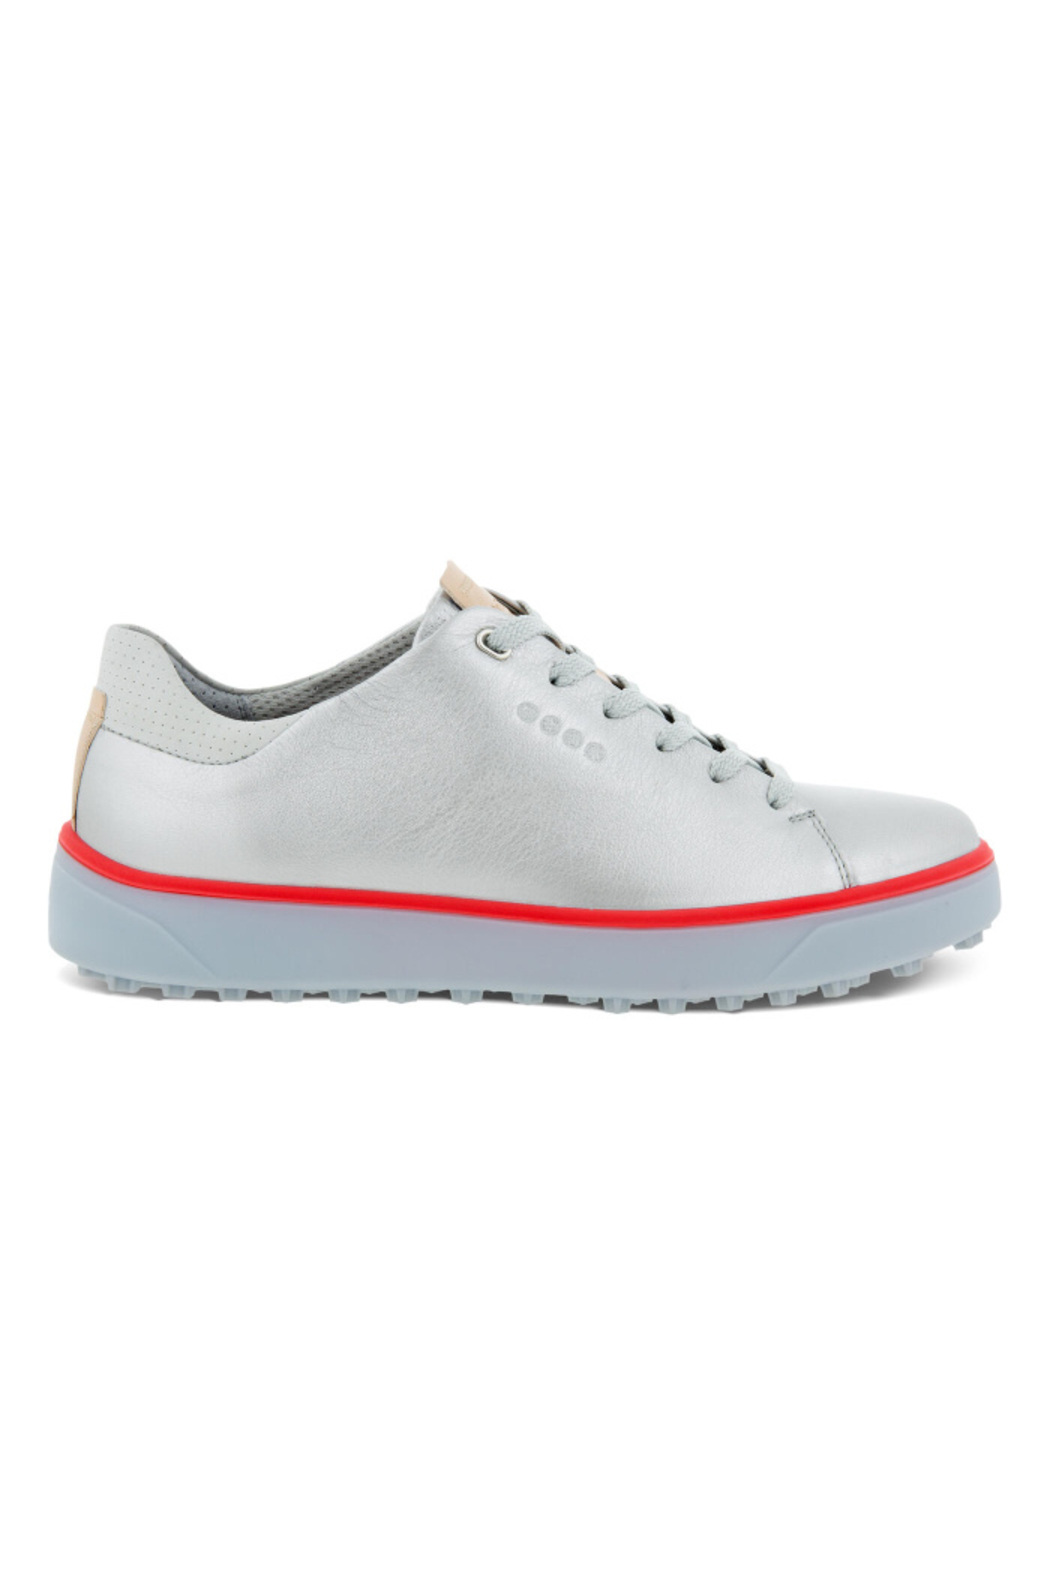 ECCO Ecco Women's Tray Golf Shoes - Front Full Image